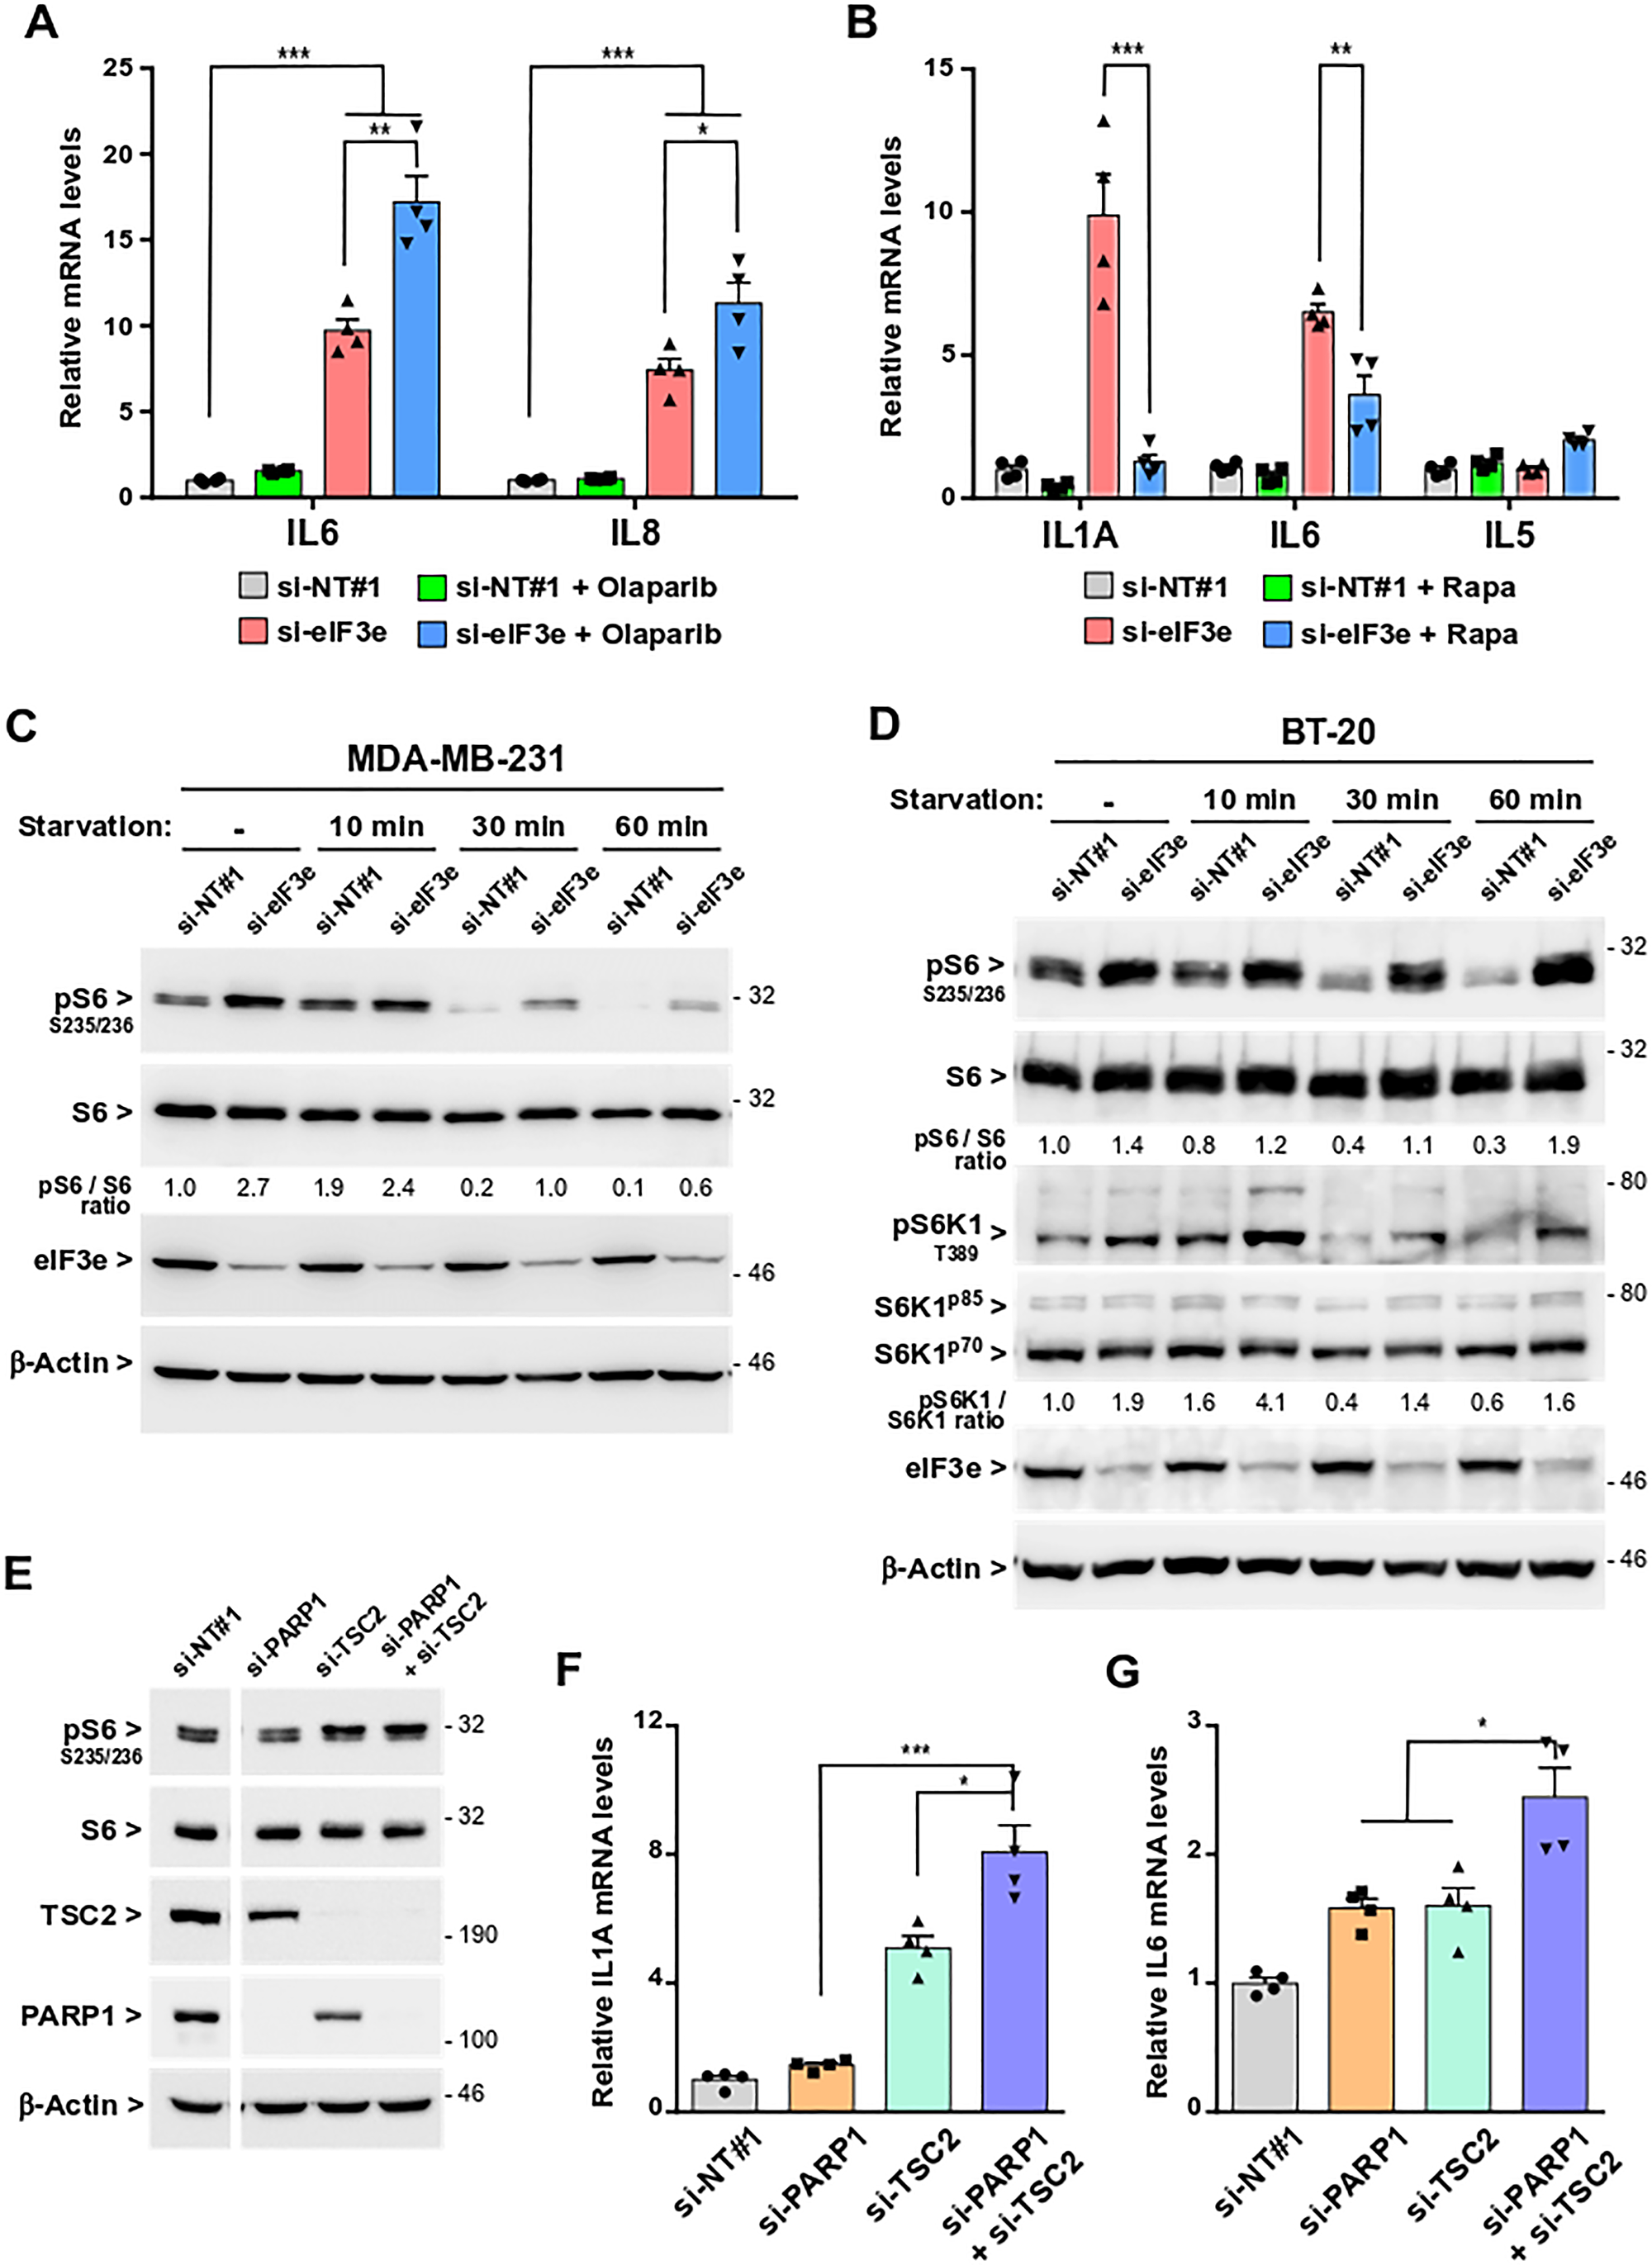 SASP development following eIF3e depletion occurs through PARP1 inhibition and mTORC1 activation.